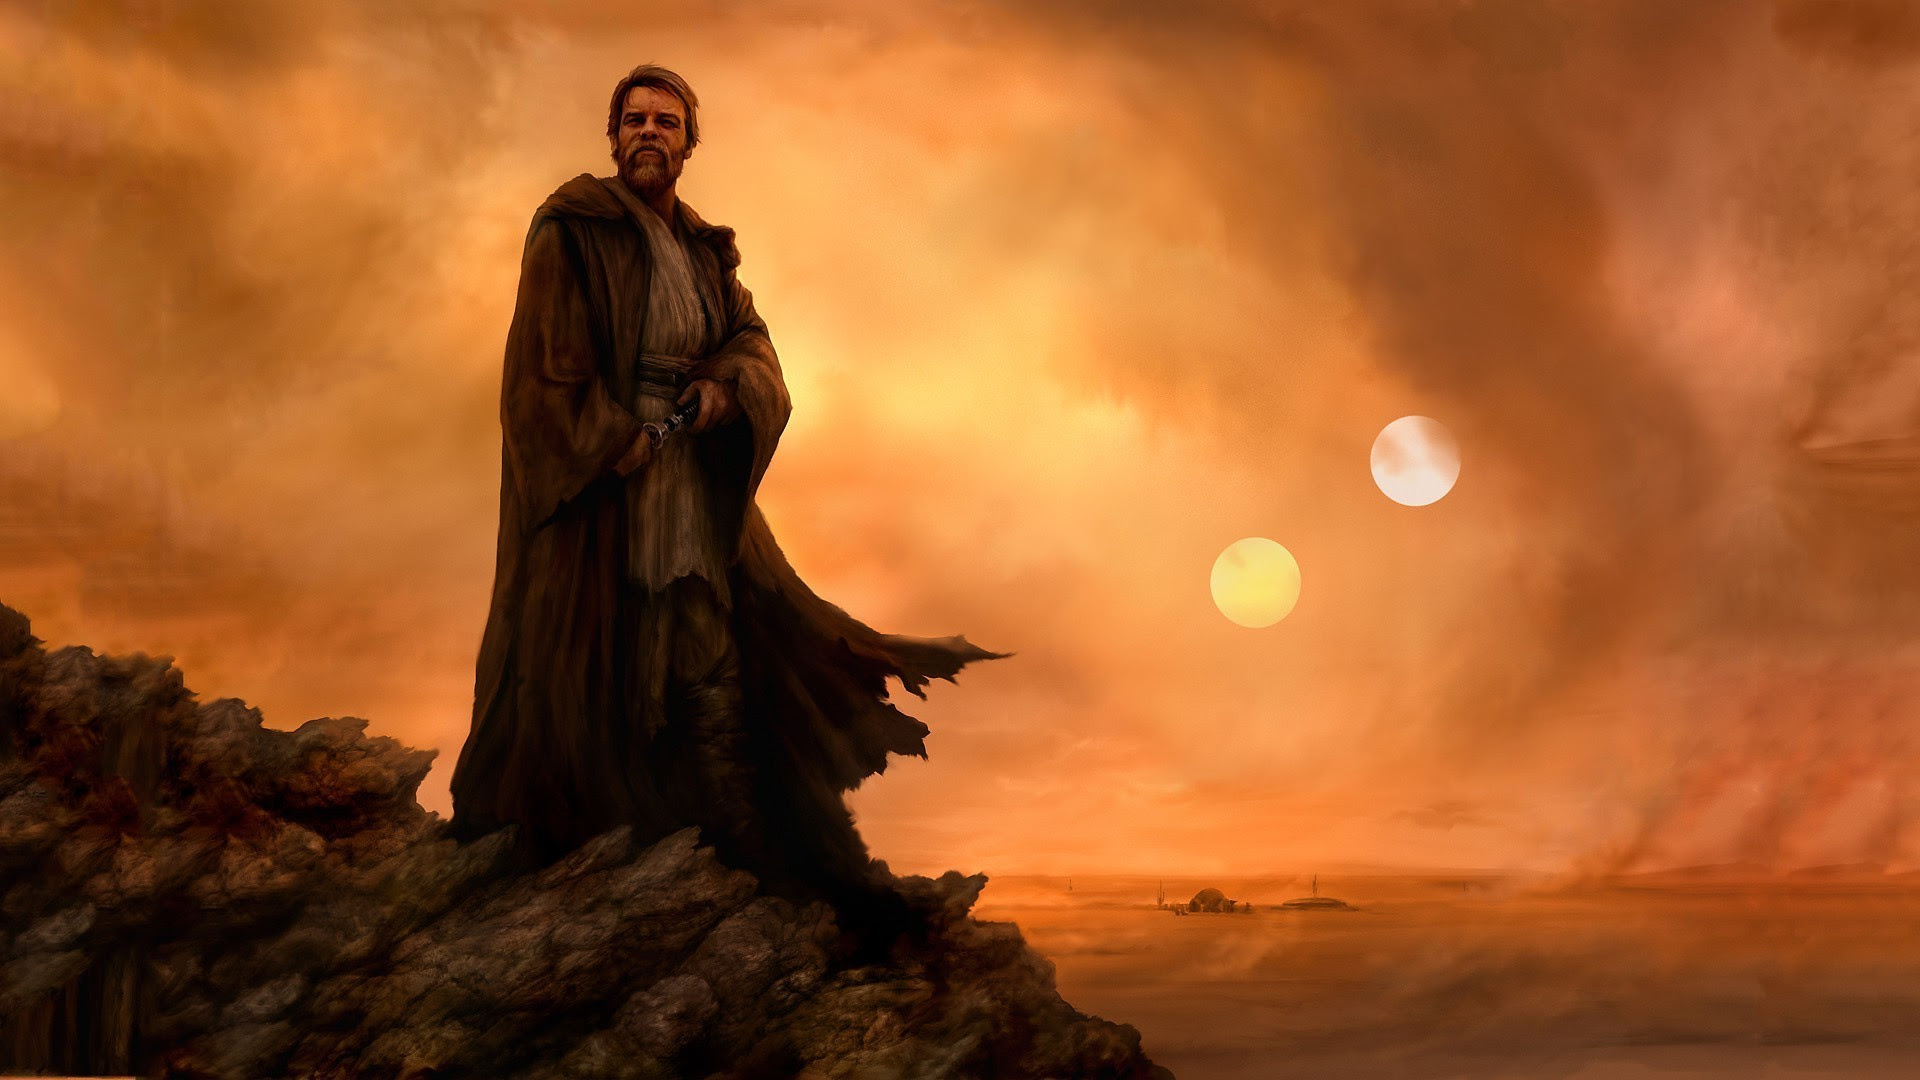 Star Wars Jedi Wallpaper 69 Images